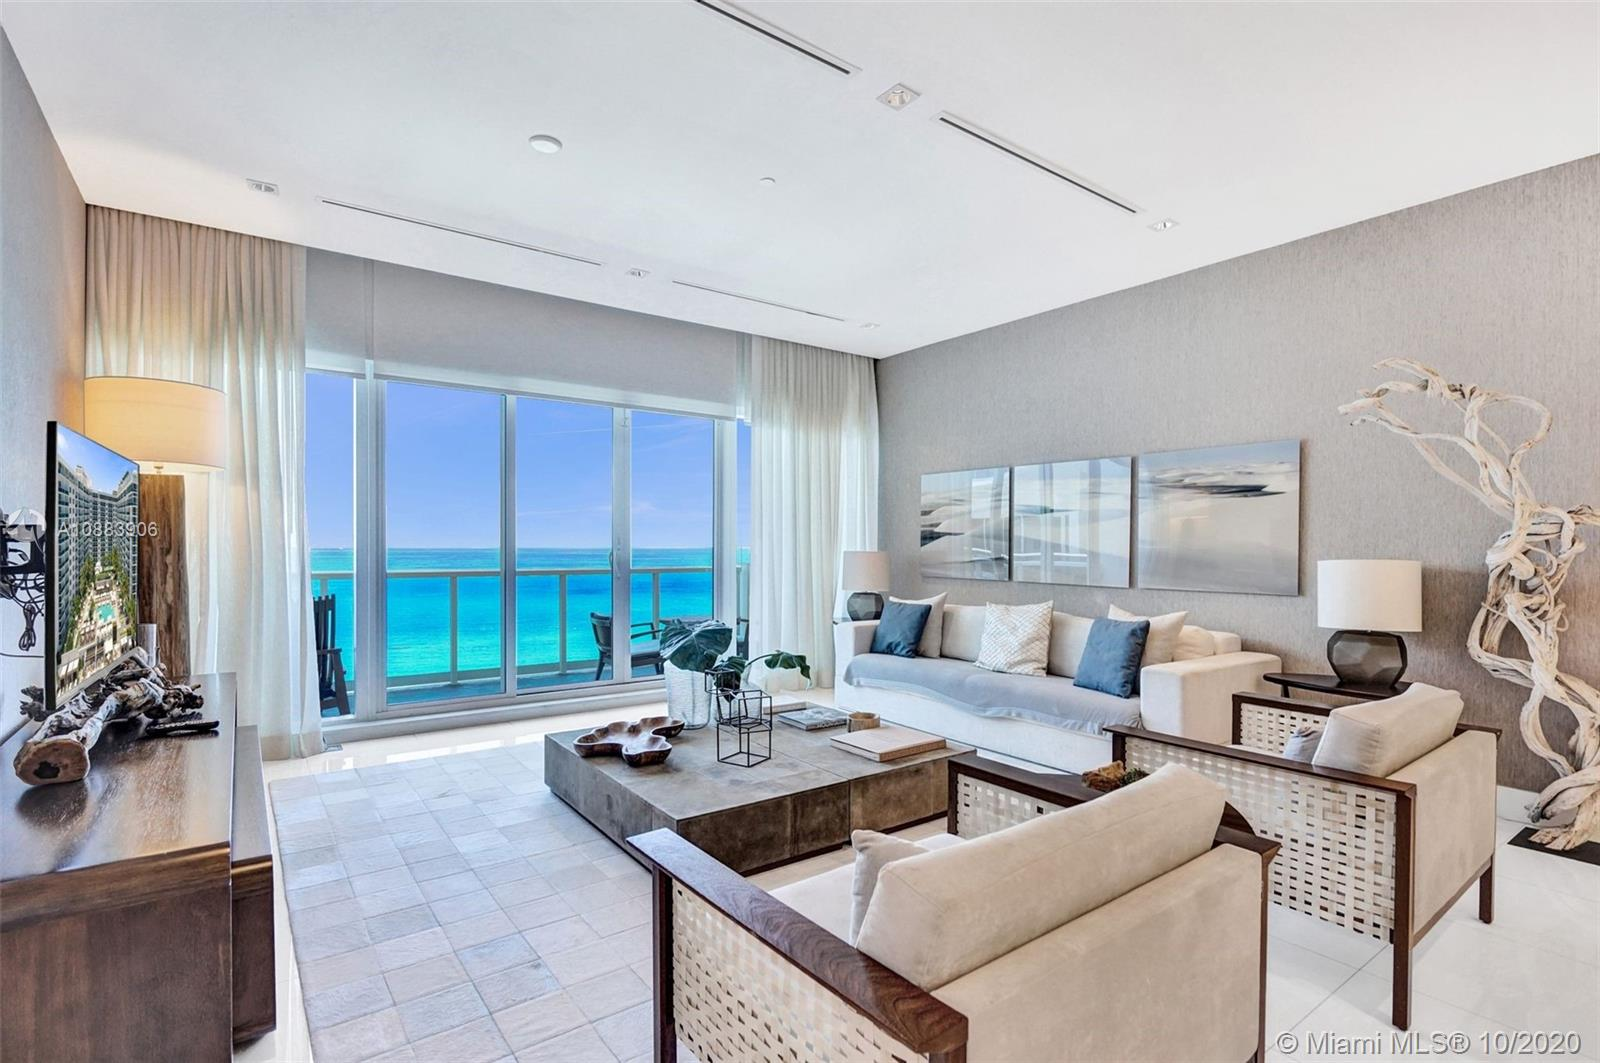 1 Hotel & Residences South Beach, Direct Ocean View Penthouse! Highest ceilings in the building.  Private beach, one of the most luxurious full service building in SoBe, open ocean views. One-of-a kind penthouse in the skies of Miami Beach. Boasting elevated ceilings & custom finishes. The feeling of a true home with over sized kitchen, living room & bedrooms. Indulge in luxurious sand filled lounges, rooftop pool & organic farm-to-table restaurants. Private resident lobby, concierge & chauffeured Tesla. Enjoy 600 linear feet of pristine beachfront, 4 pools, 14,000 sqft state-of-the-art fitness center (Anatomy gym), spa, beach service, valet and much more!